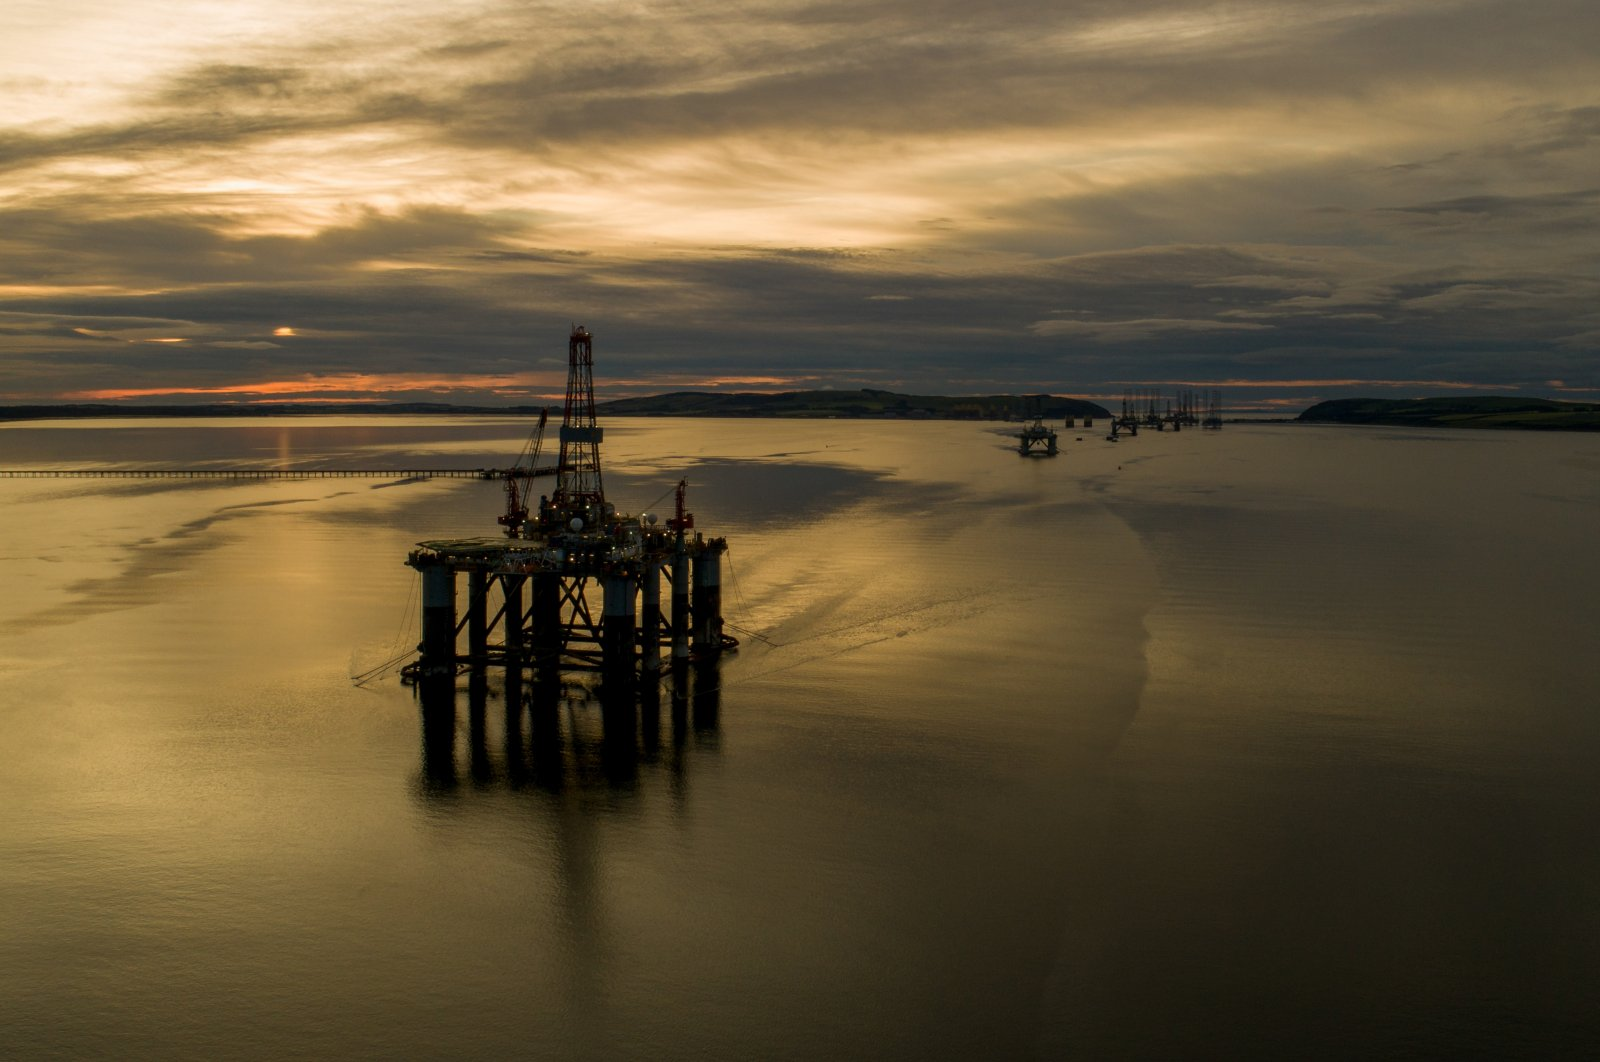 Mobile offshore drilling units stand in the Port of Cromarty Firth in this aerial view in Cromarty, Scotland, June 23, 2020. (Photo by Getty Images)